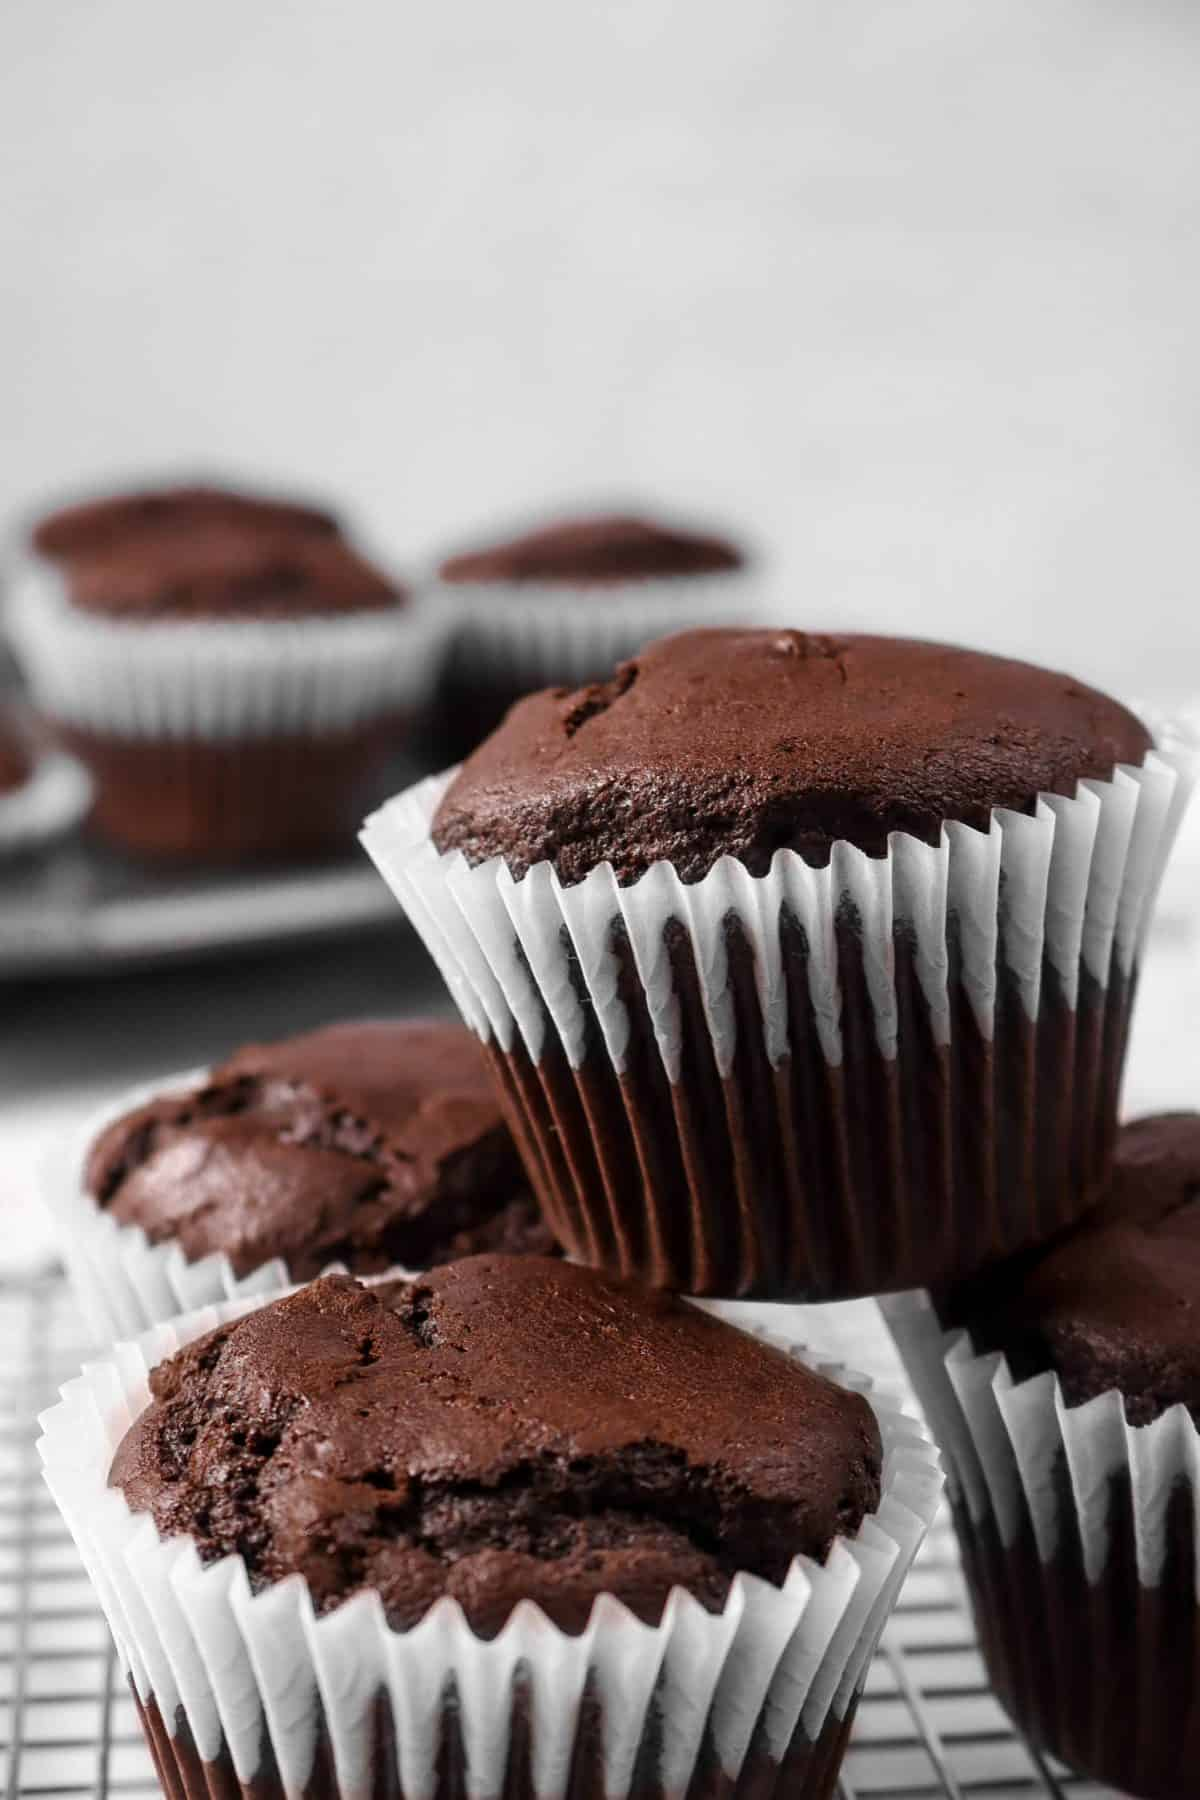 four chocolate muffins stacked on top of each other with a pan of muffins behind it